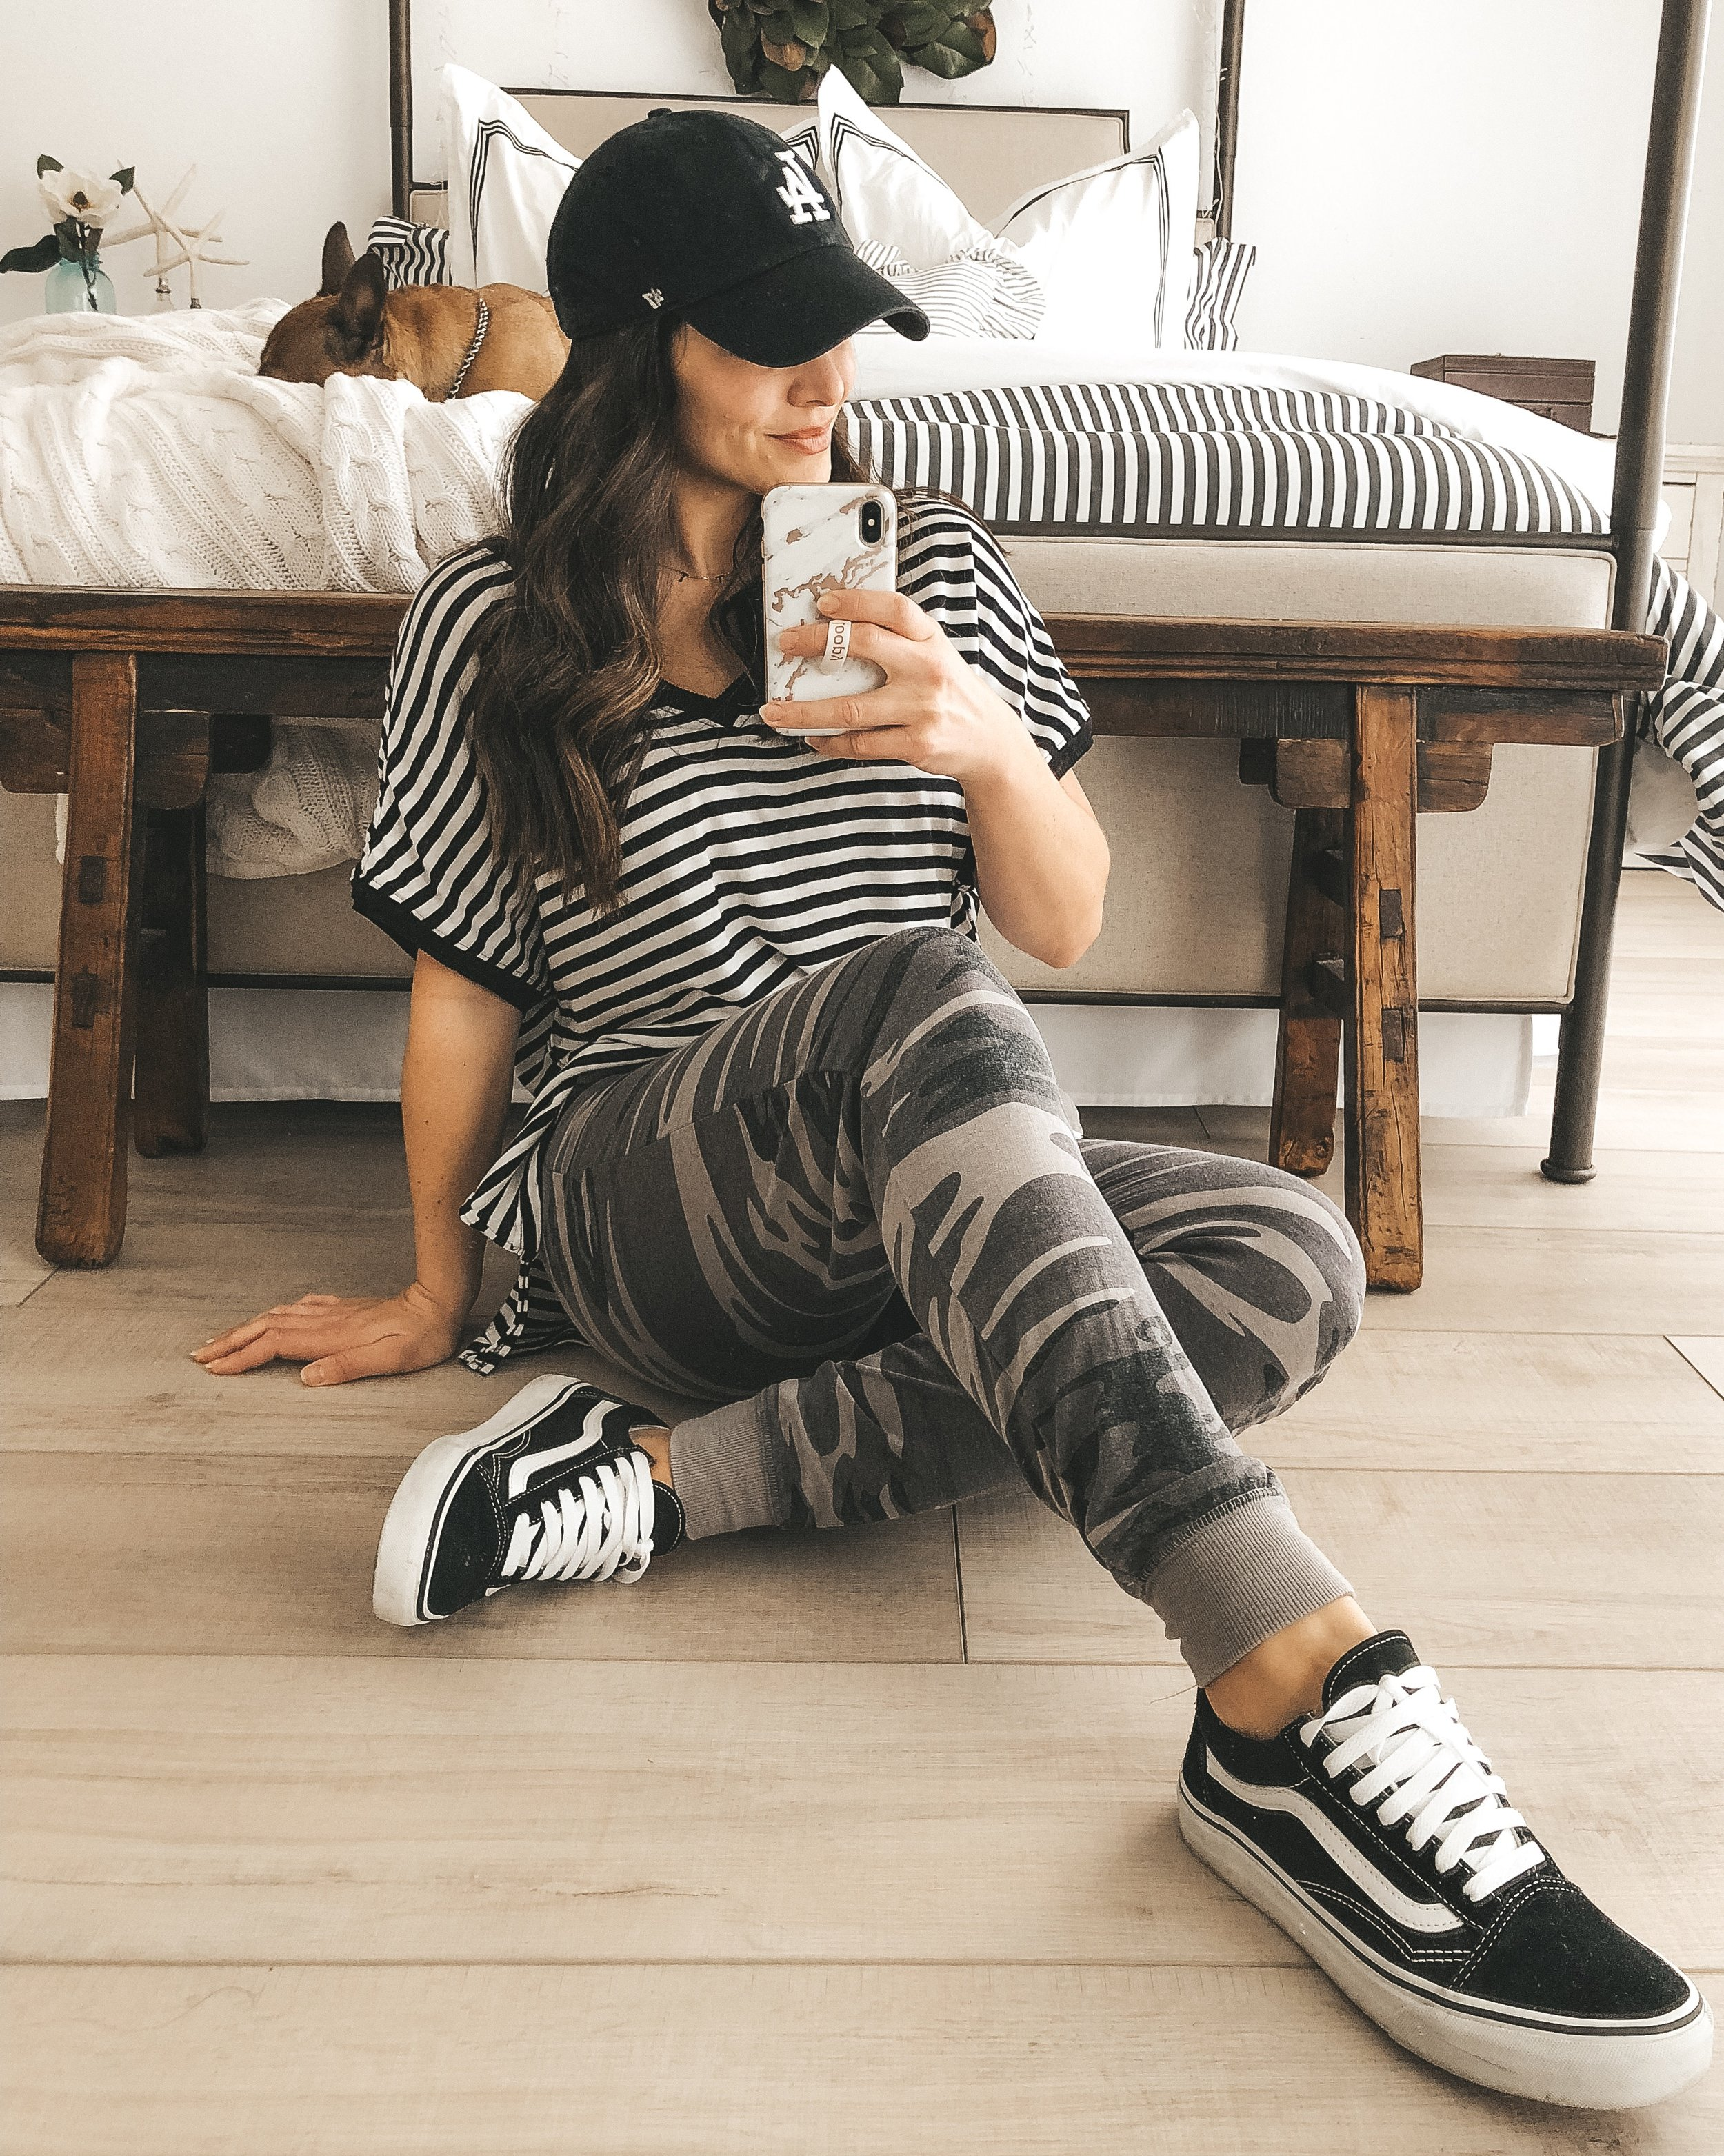 Z Supply Boyfriend tee with Z Supply camo joggers.  Vans Old skool in black and white.  Cute mom outfit for the weekend.